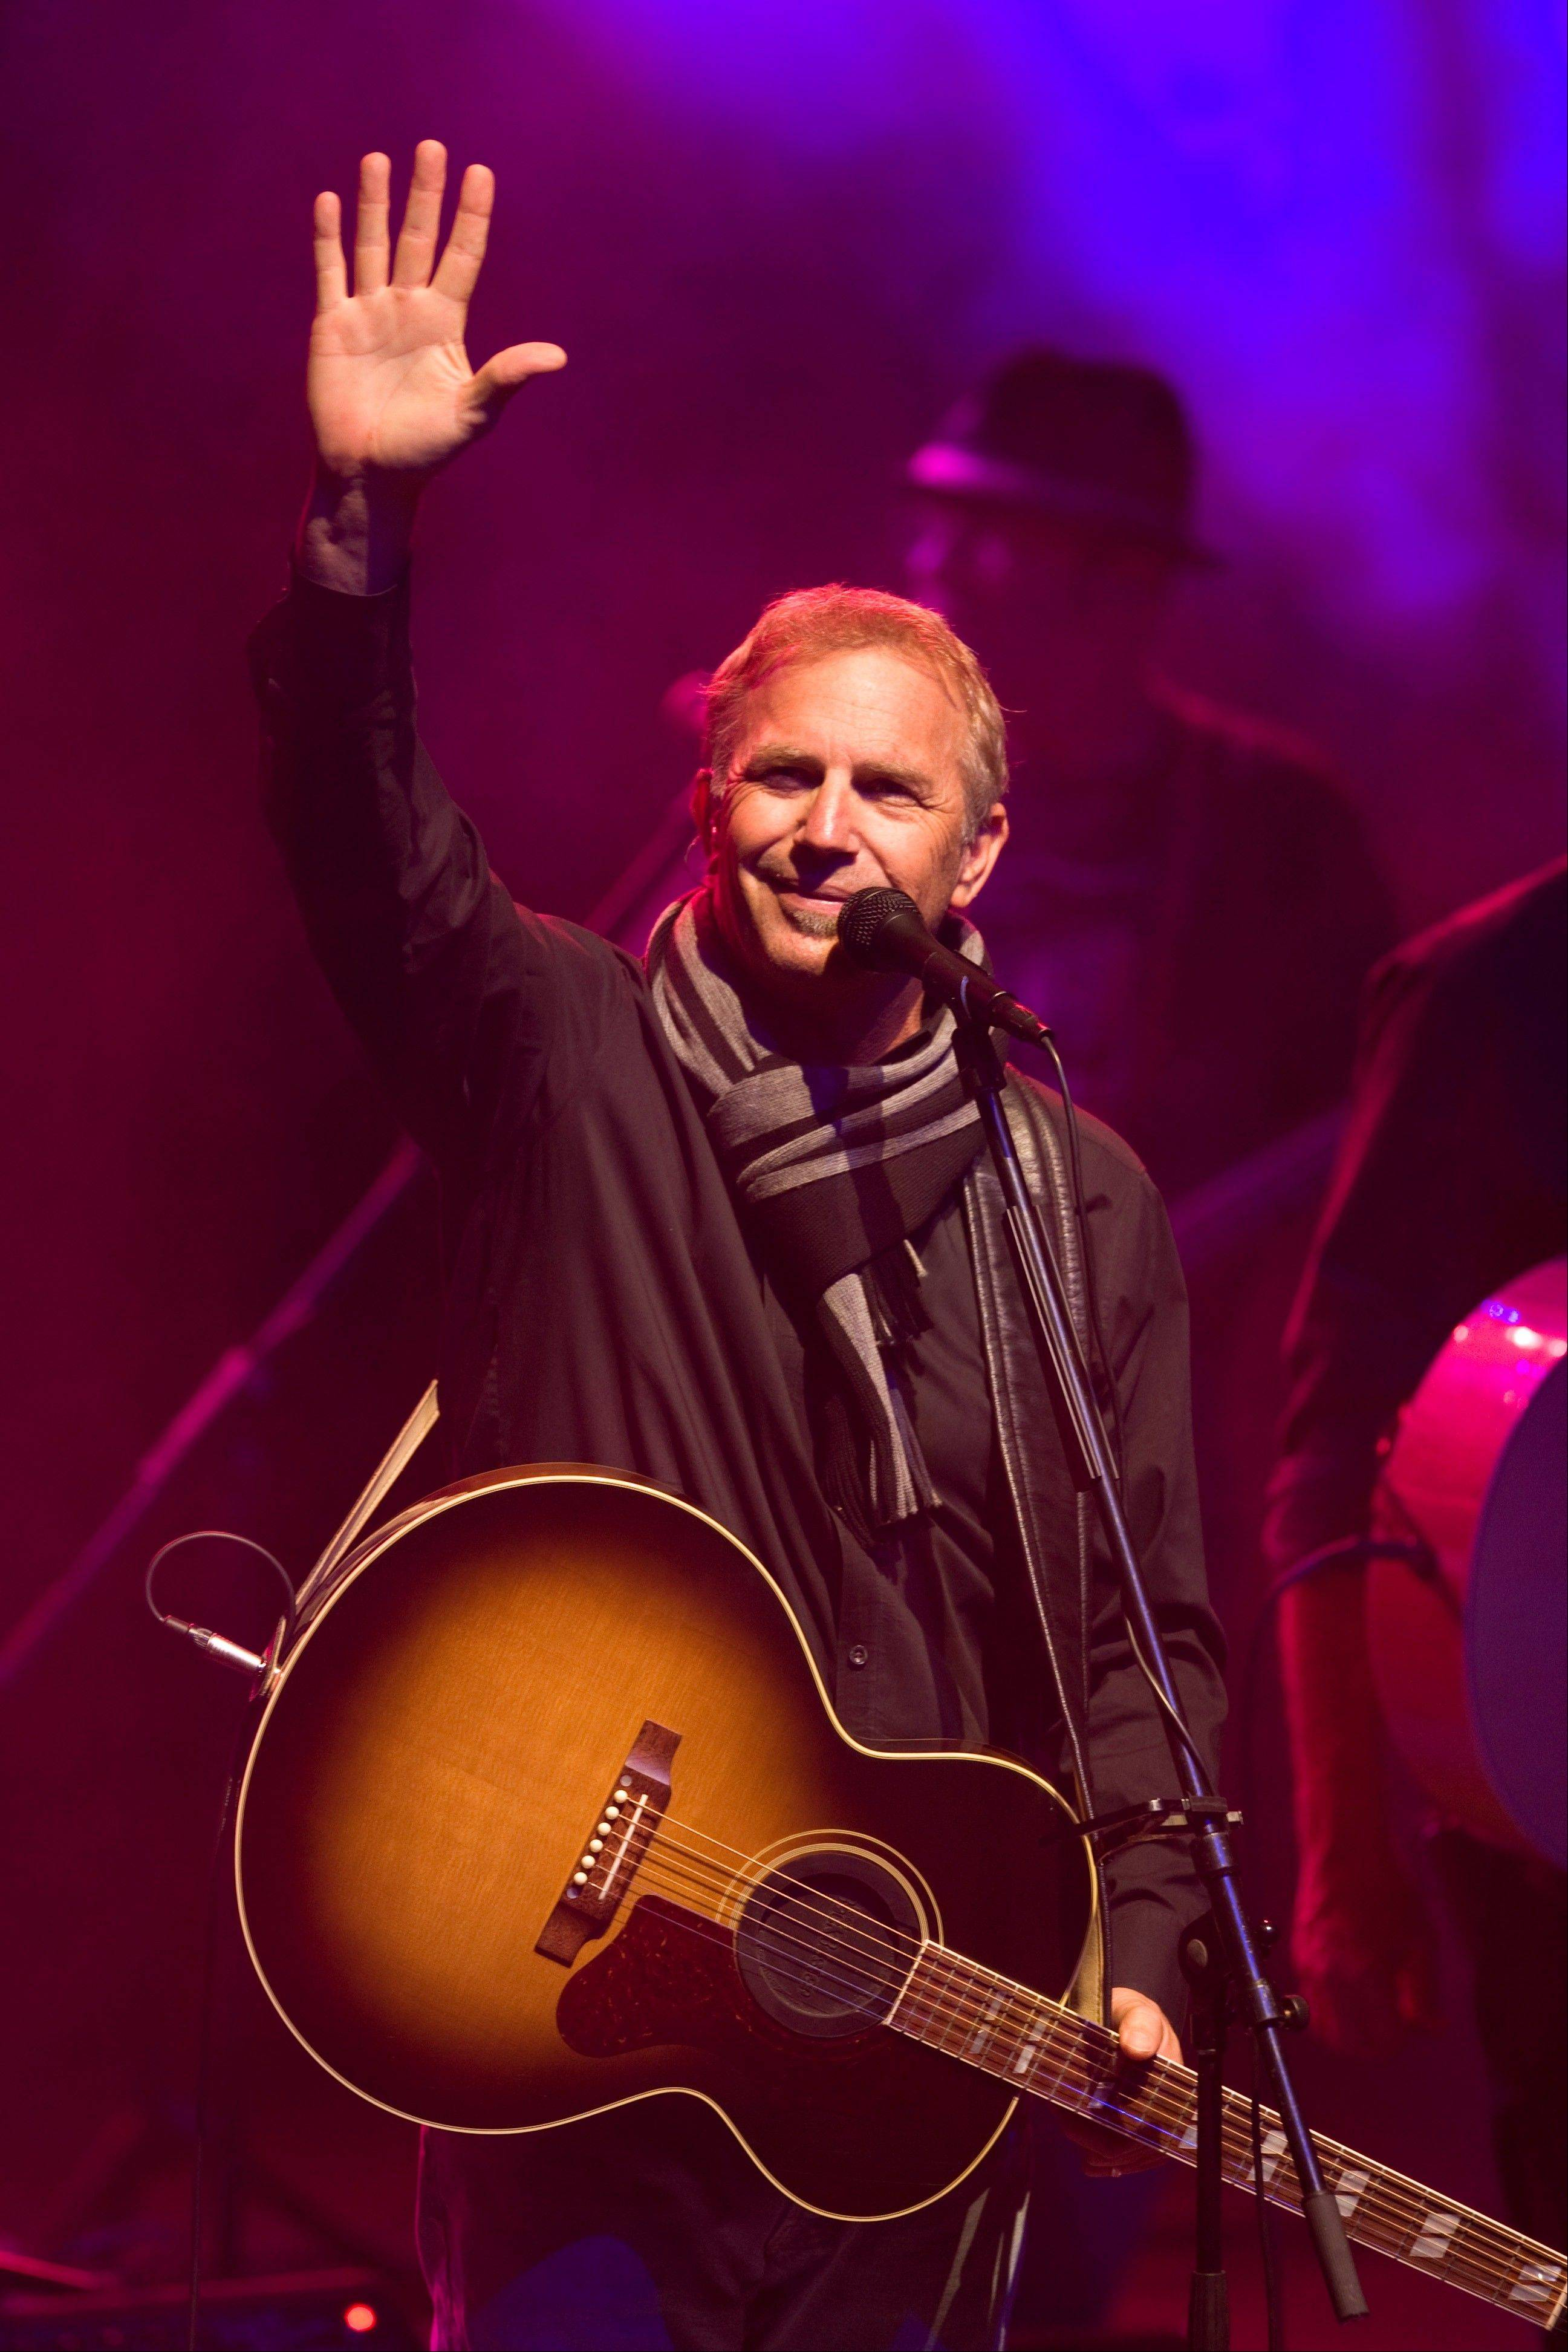 Kevin Costner and his band Modern West will headline at the Arcada Theatre in St. Charles on Monday, April 21.